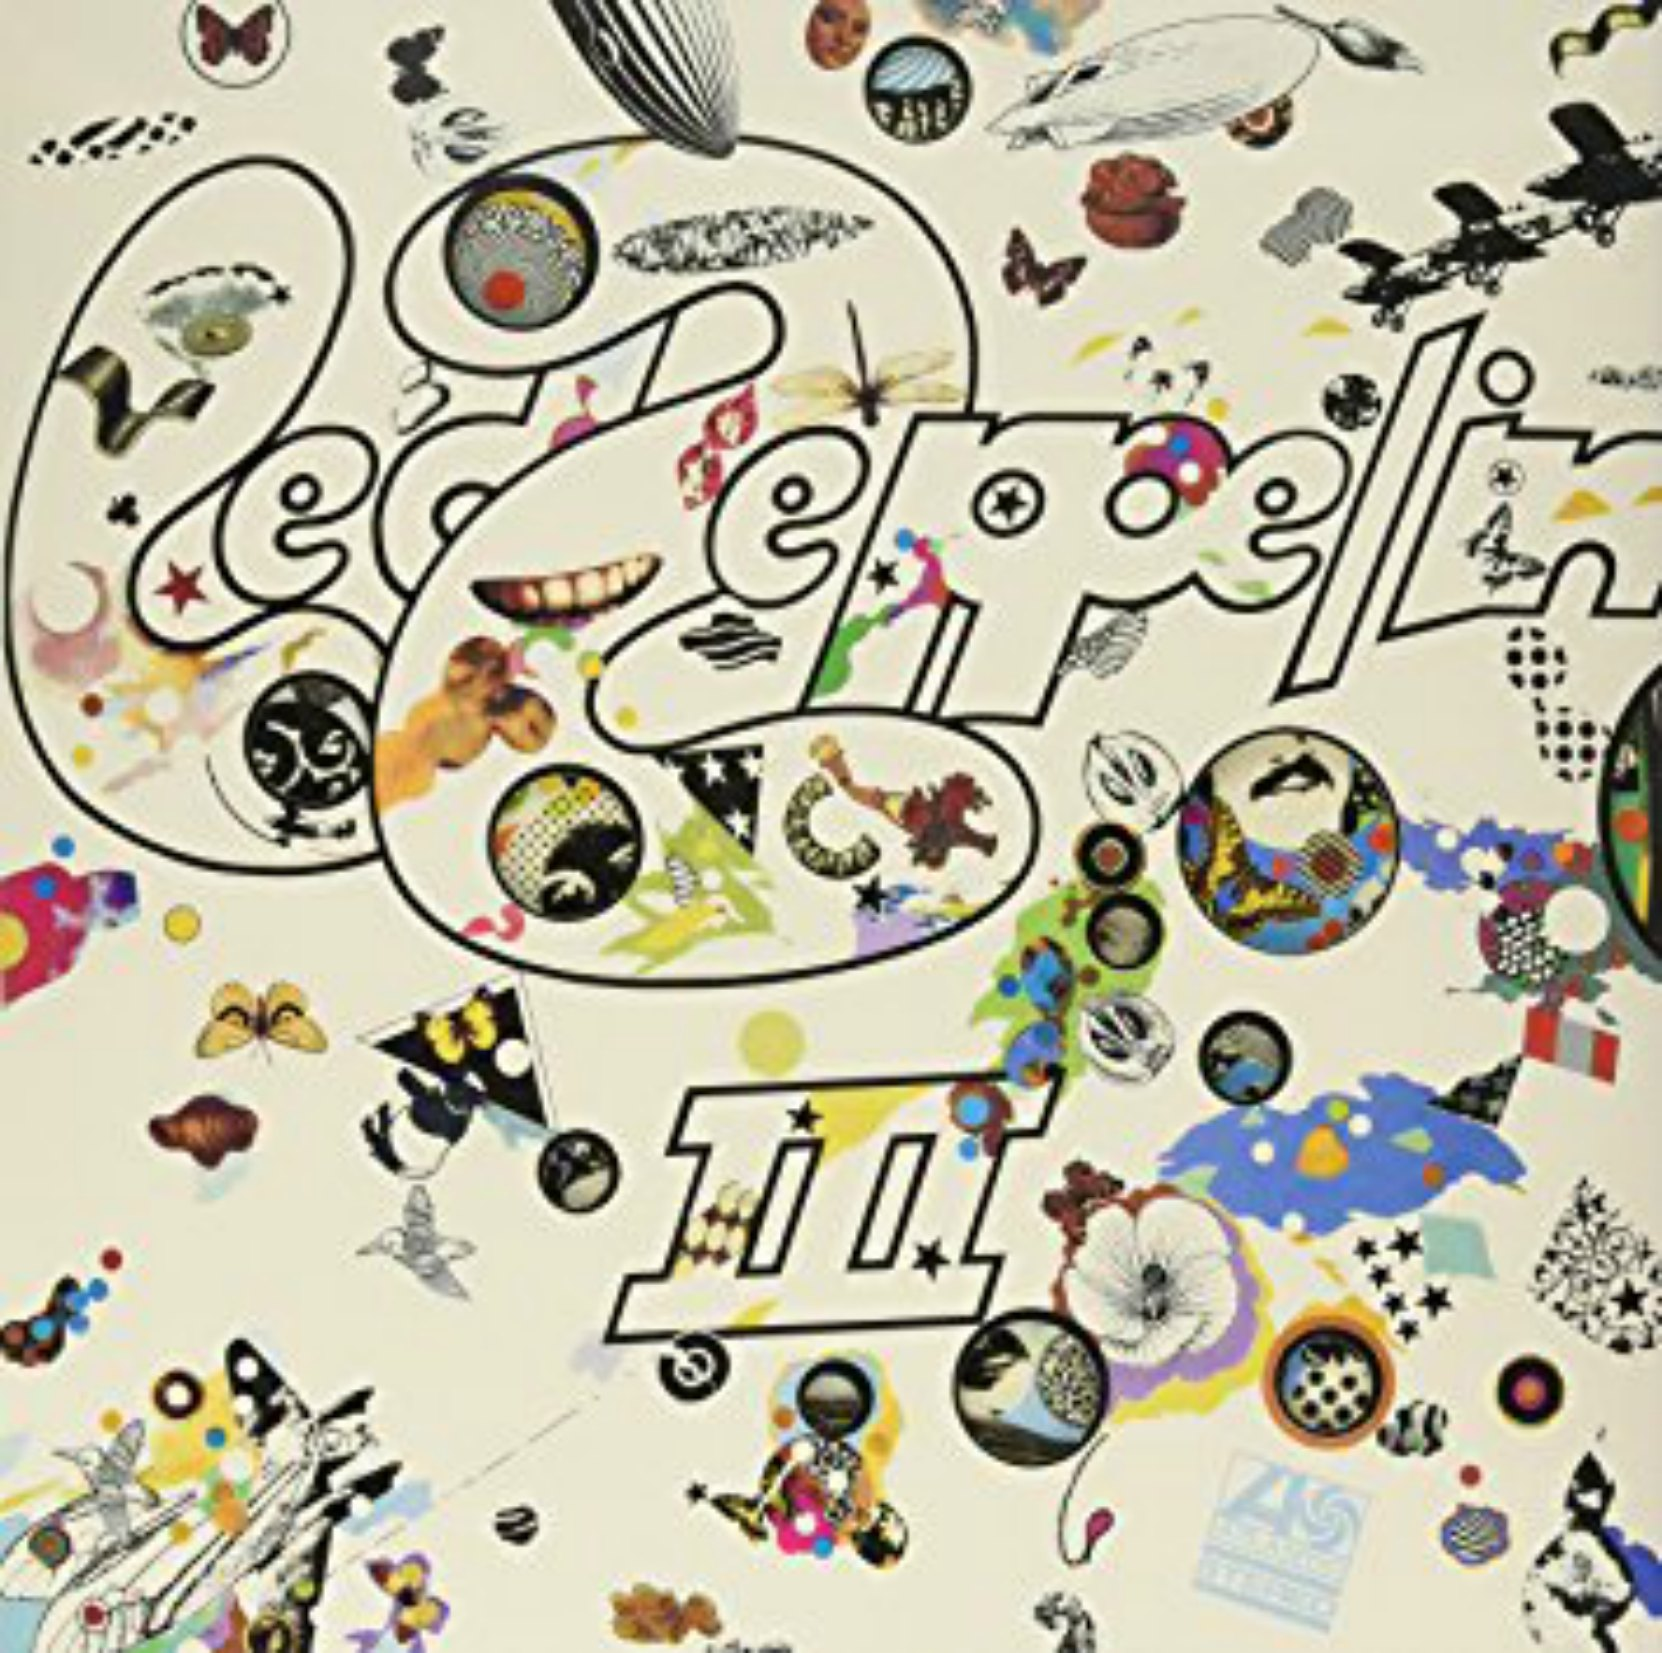 Album cover - Led Zeppelin III, released 1970